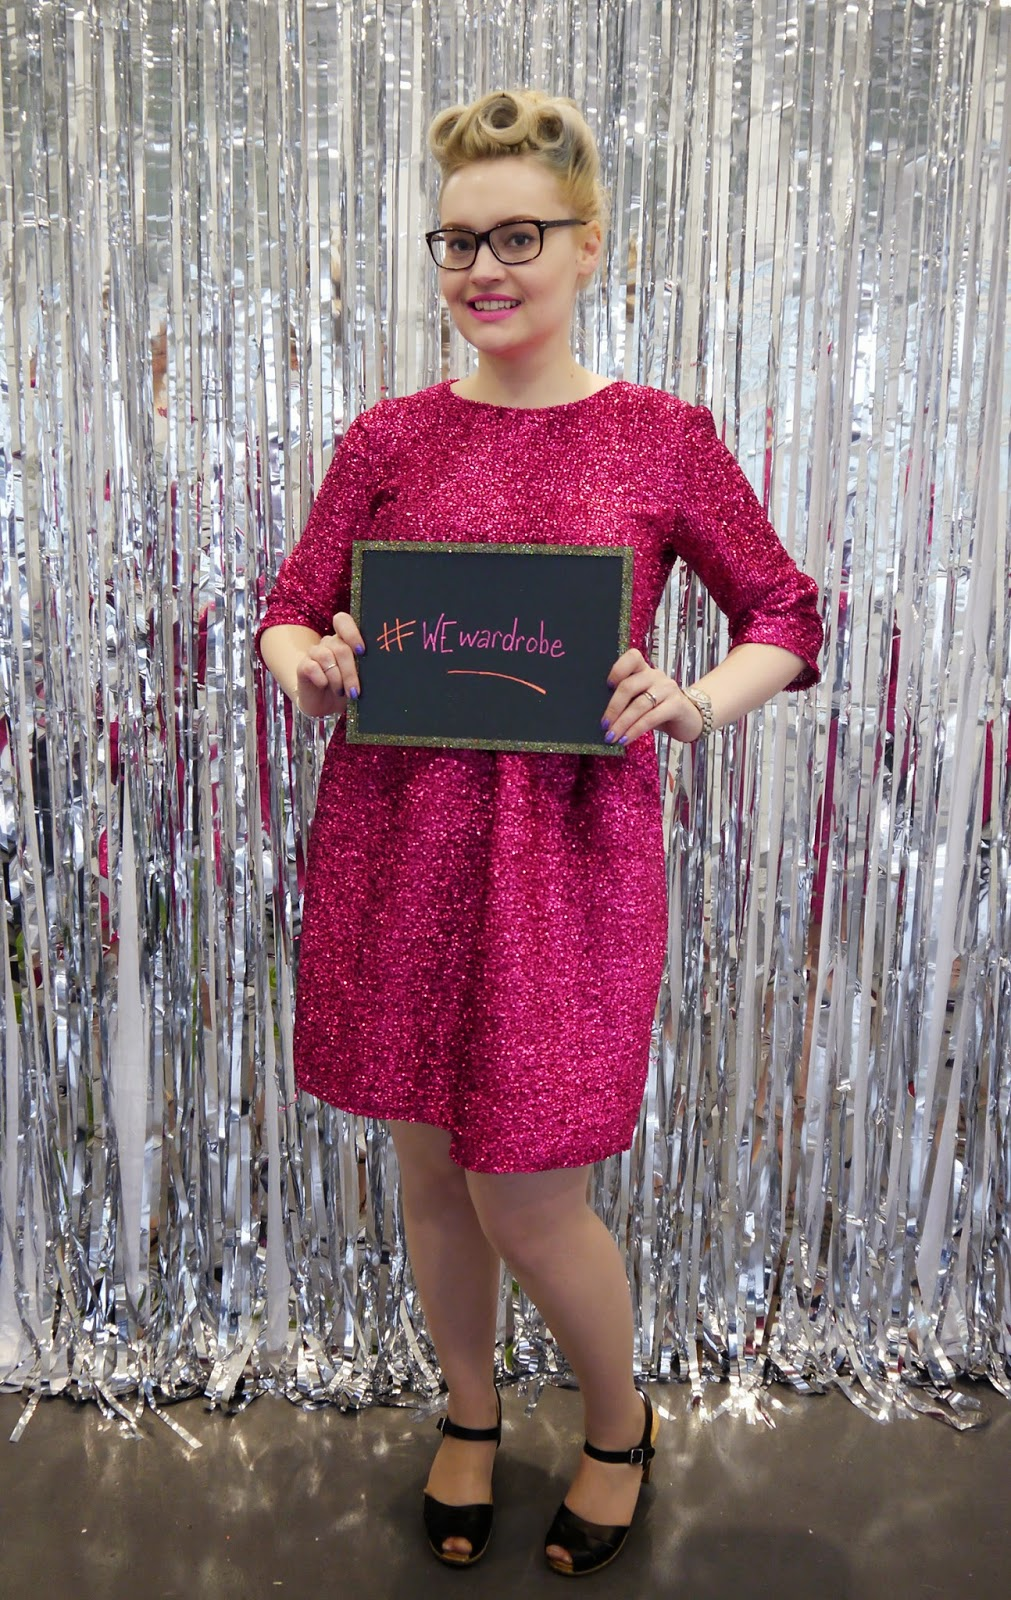 photobooth, DIY, sparkly, party, sequin dress, VintageStyleMe, Wear Eponymous, poodle hair, victory rolls, Betty Grable,